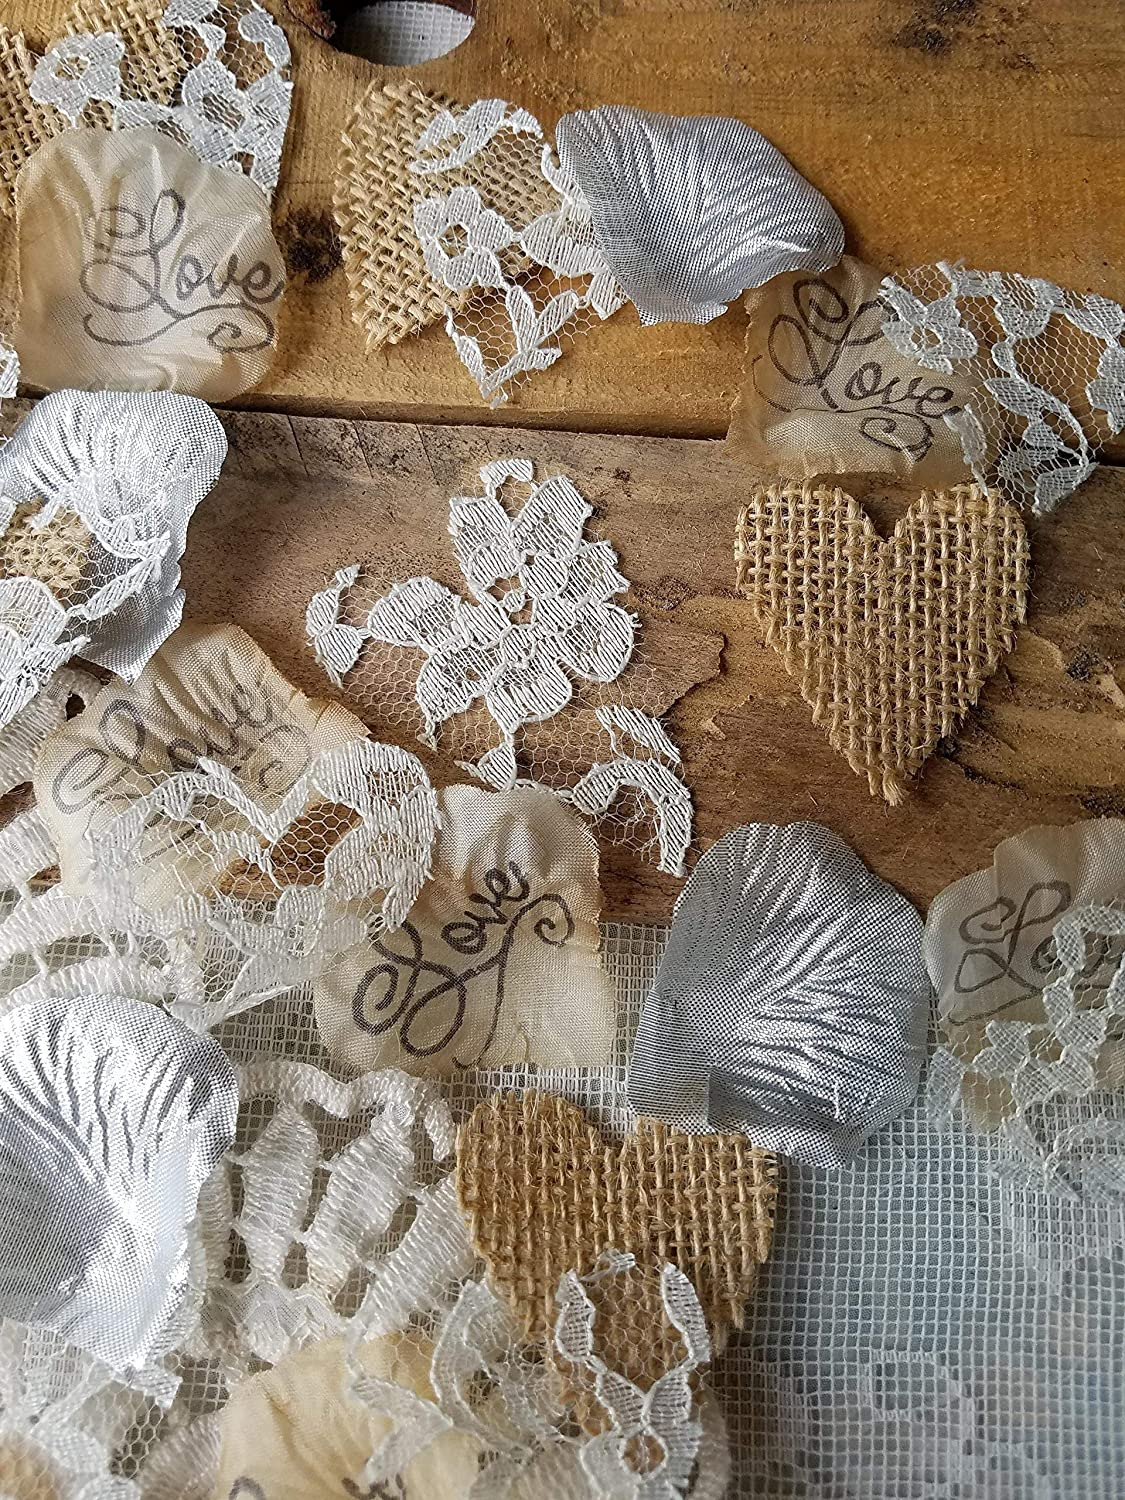 Burlap and Lace Rose Petals with Silver Artificial Petals, Rustic Wedding Decor, Table Scatter, by Burlap And Bling Design Studio(250pcs.)